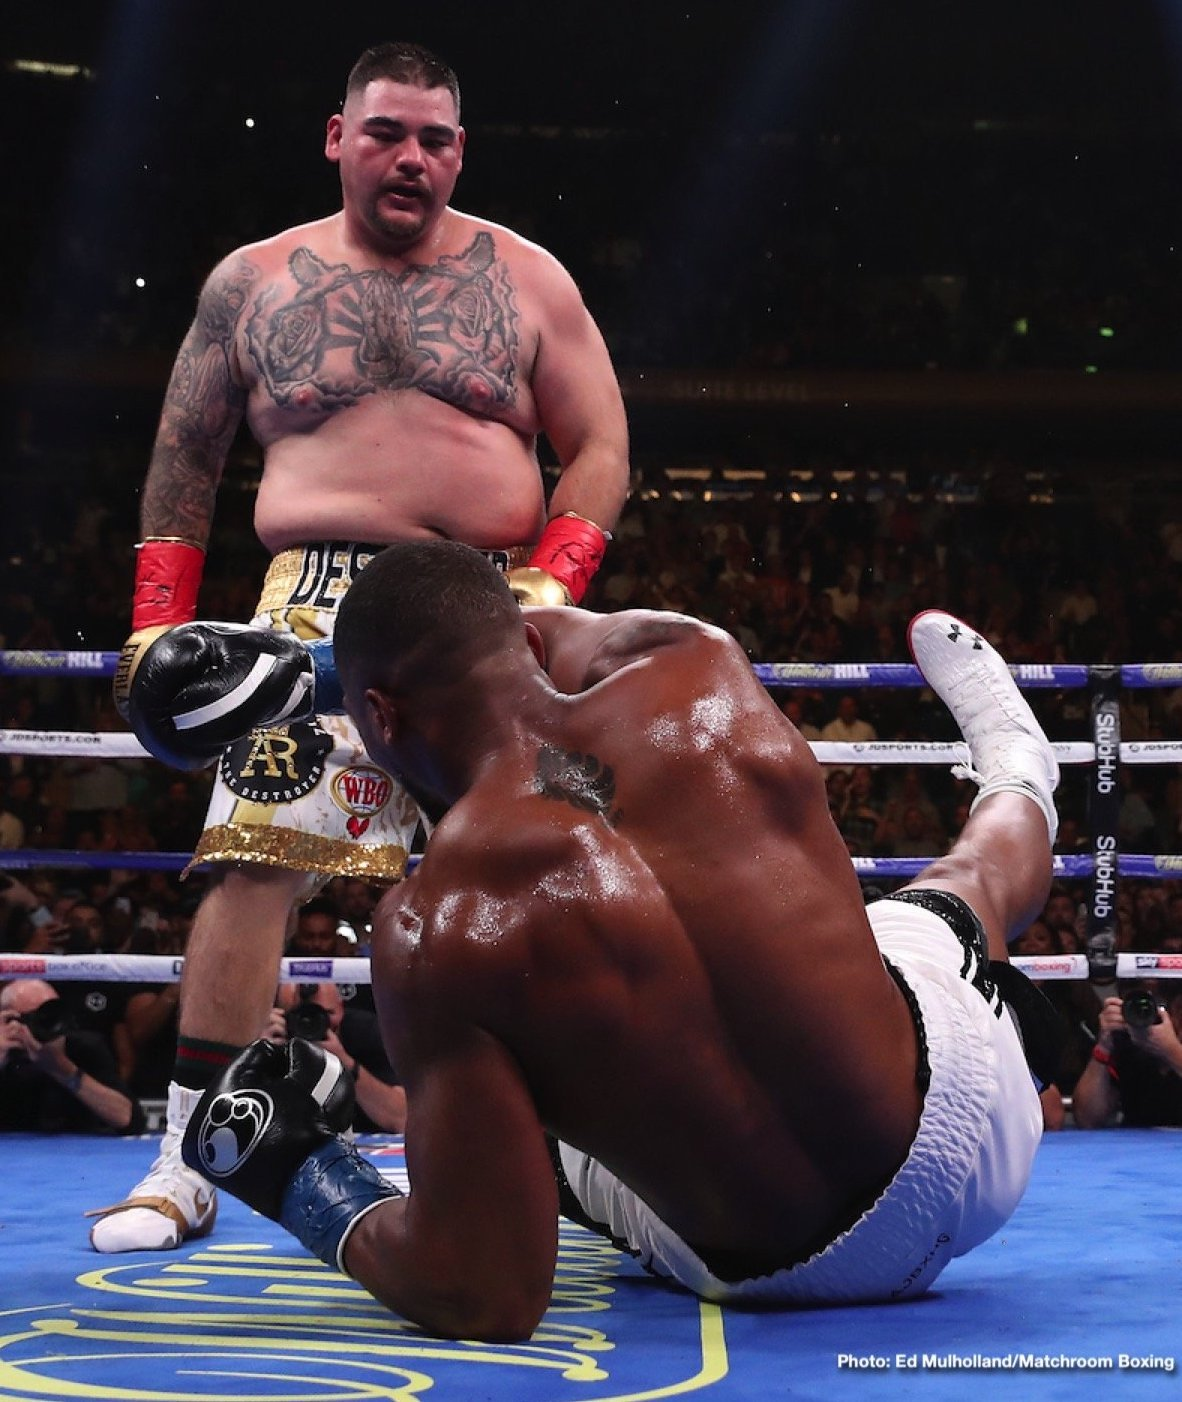 Andy Ruiz - It has yet to be officially confirmed, but a number of publications strongly feel the big heavyweight title fight rematch between Andy Ruiz and Anthony Joshua will take place in Saudi Arabia on December 7th. The Telegraph broke this exclusive news story. According to sources who The Telegraph spoke with, the huge sum of $100 million secured the deal, the Saudi money men successful in getting the fight for Riyadh.